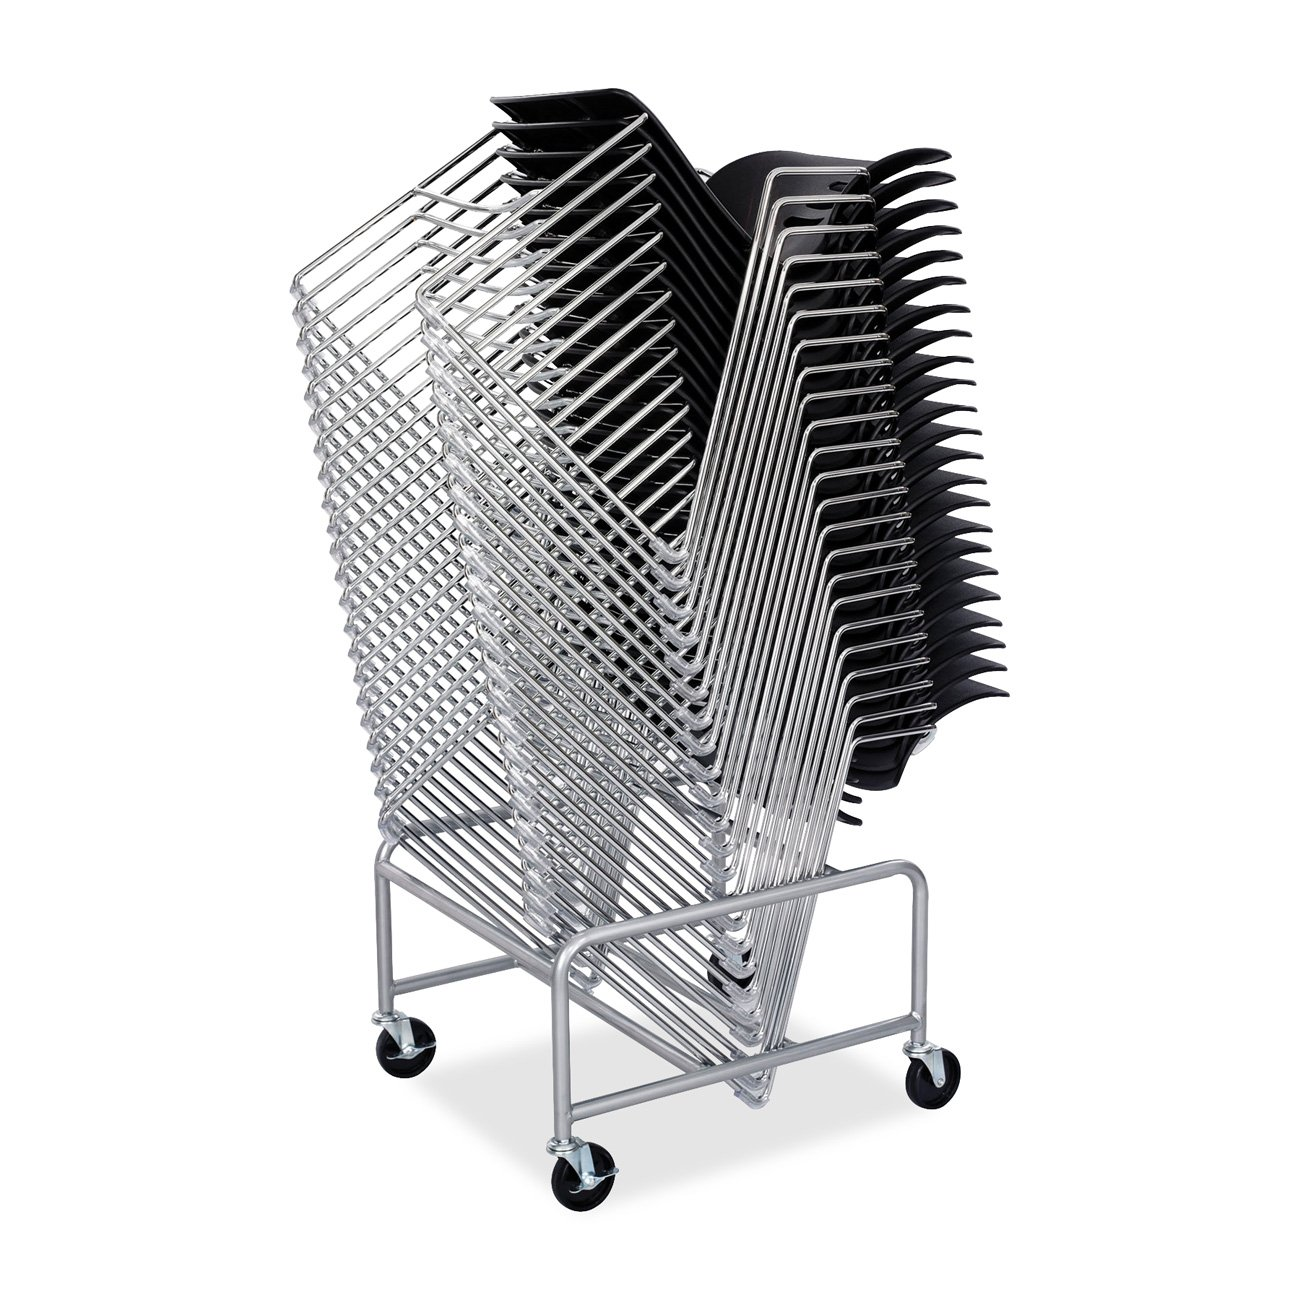 Safco Products 4190SL Sled Base Stack Chair Cart for use with Veer and Vy Stack Chairs. sold separately, Silver